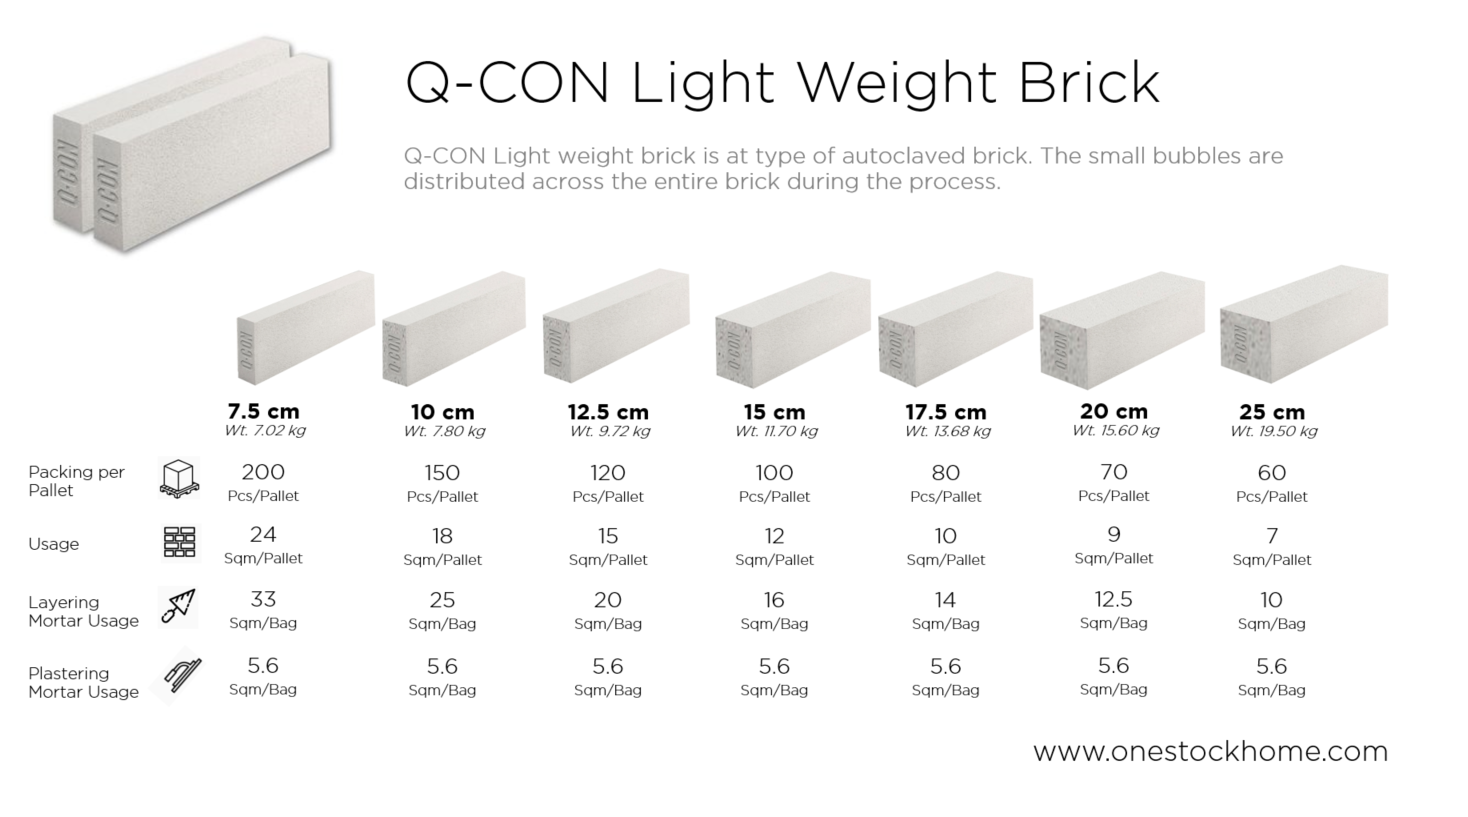 qcon,light,weight,brick,best,price,q-con,lwb,cheap,